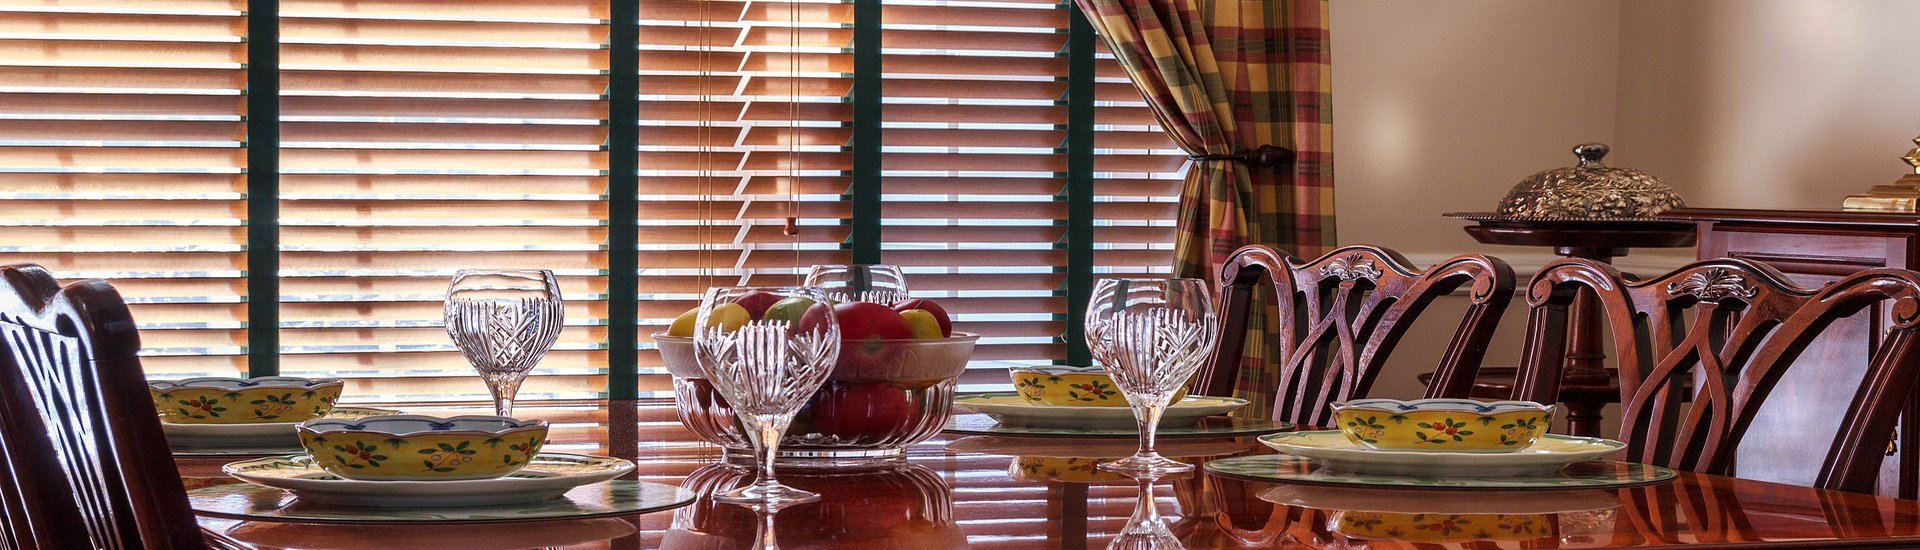 picture of wooden venetian blinds